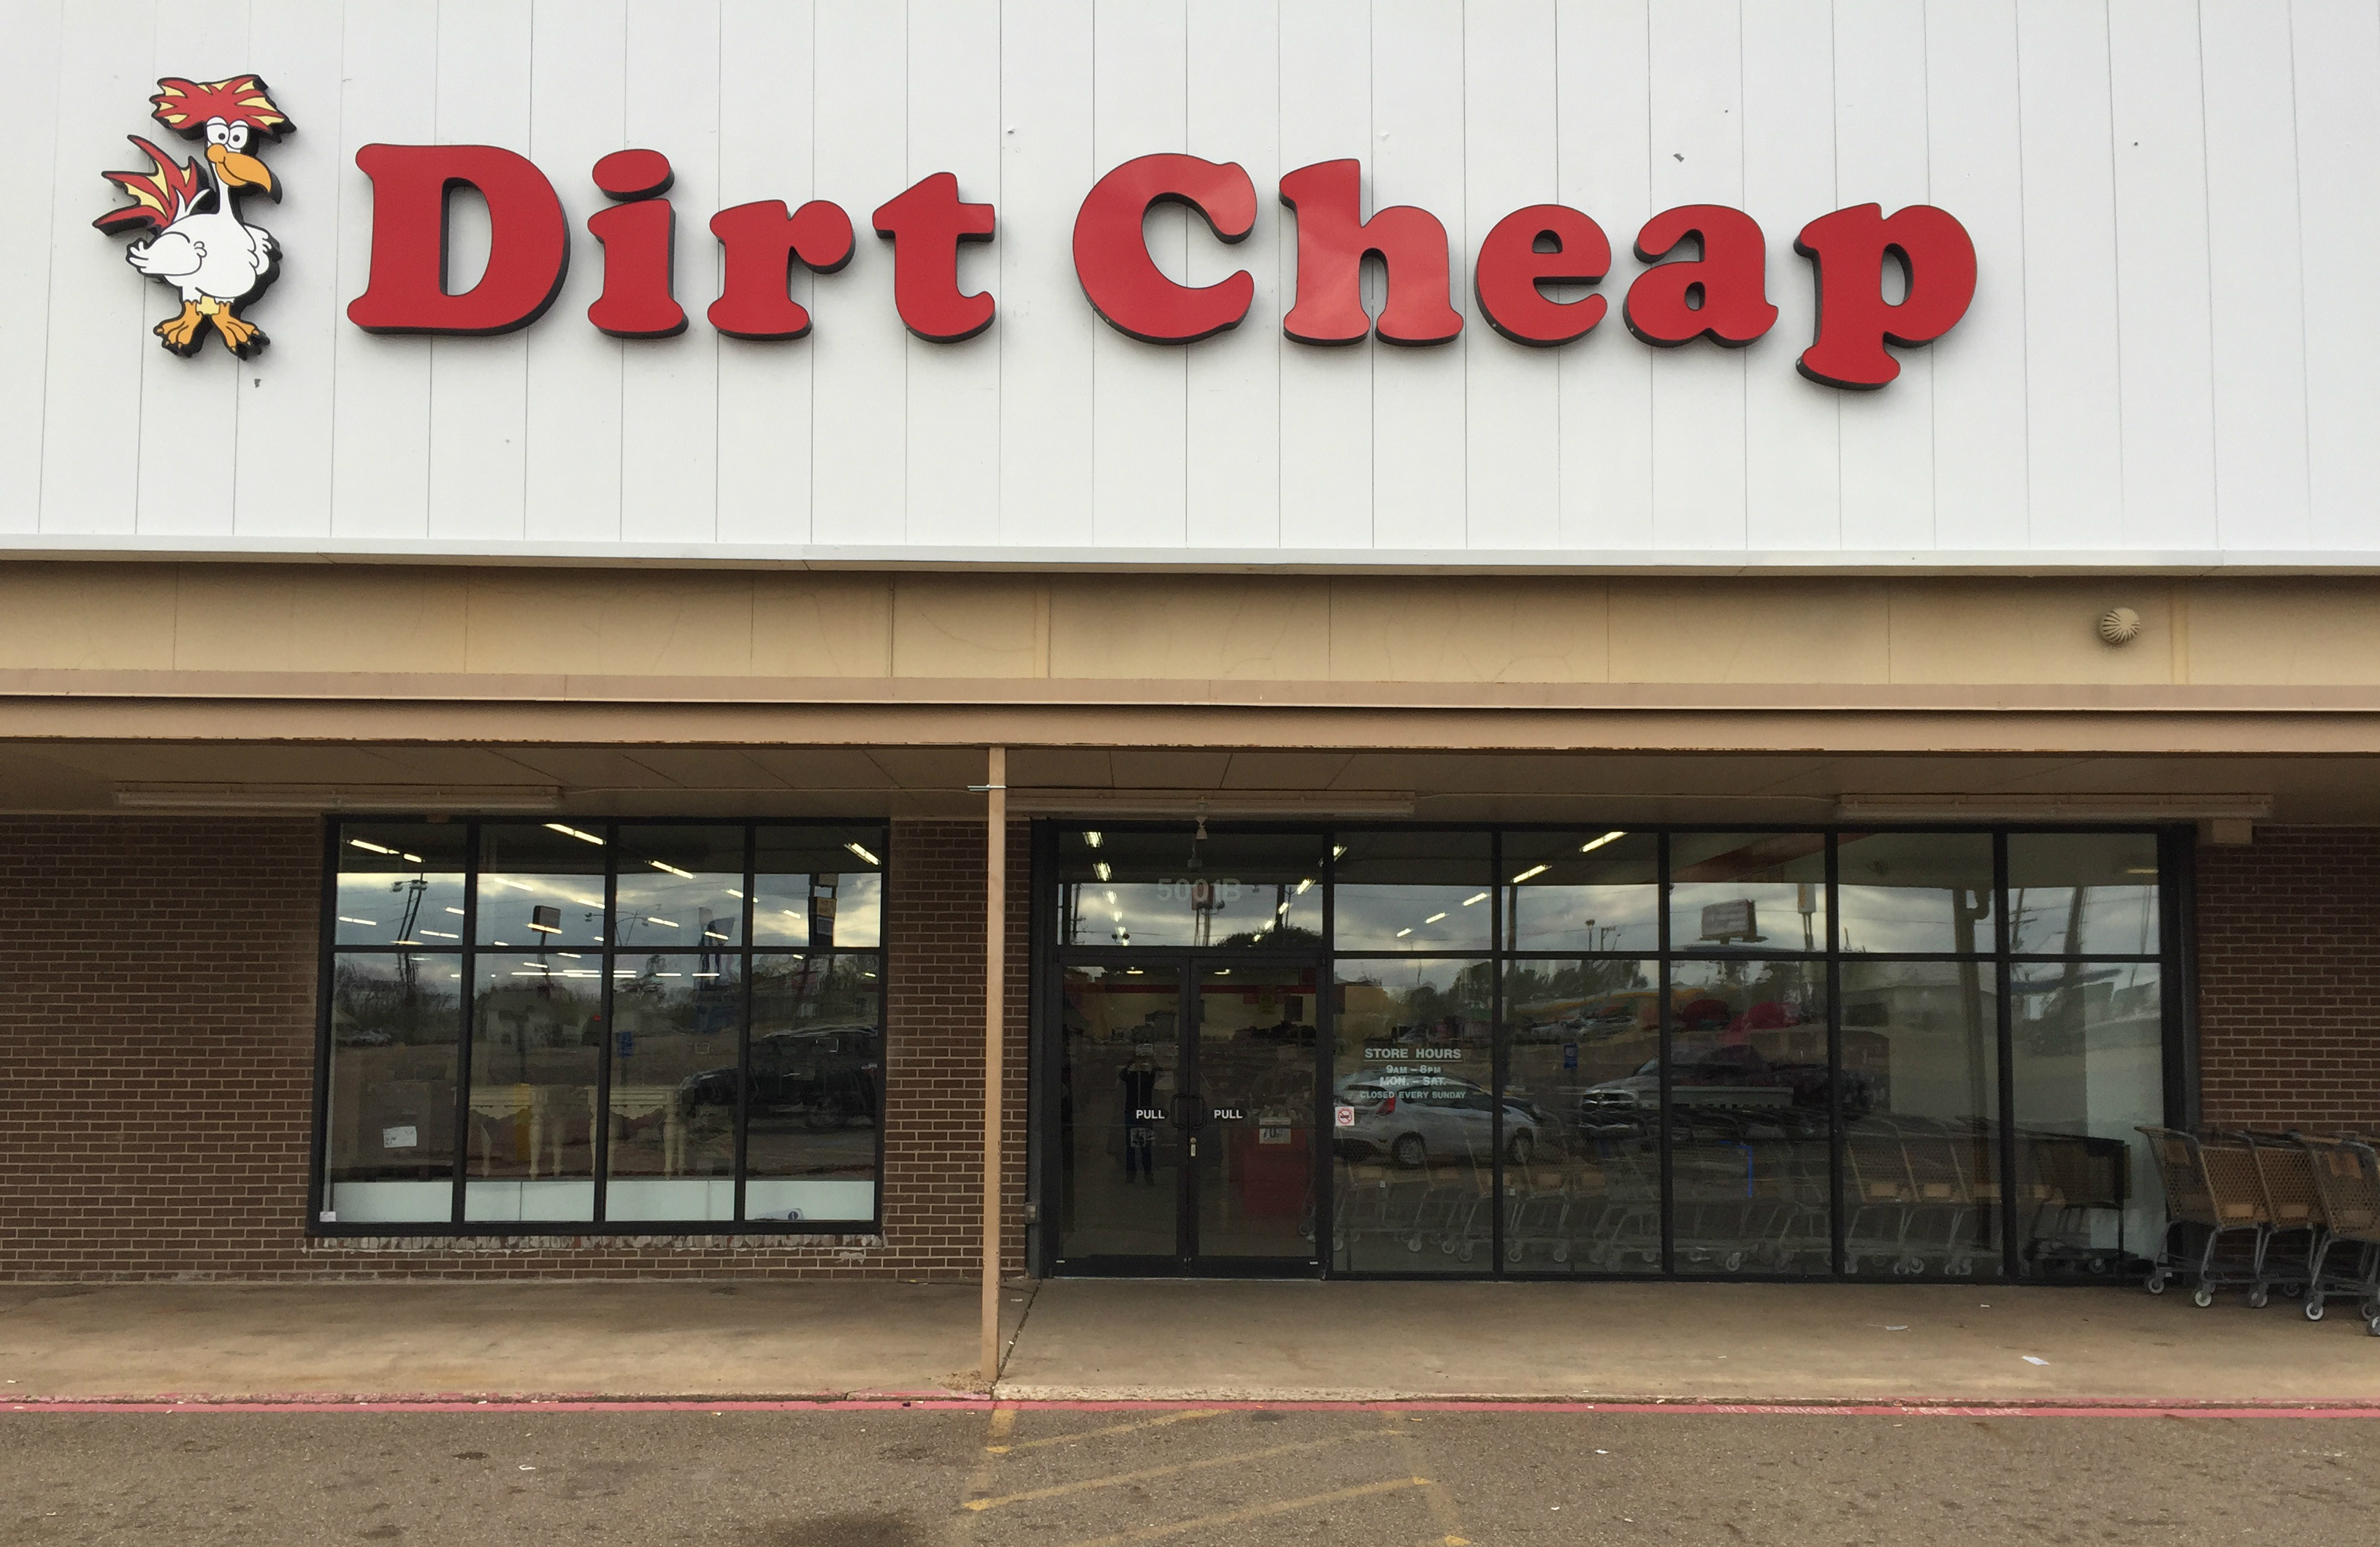 Texarkana Dirt Cheap